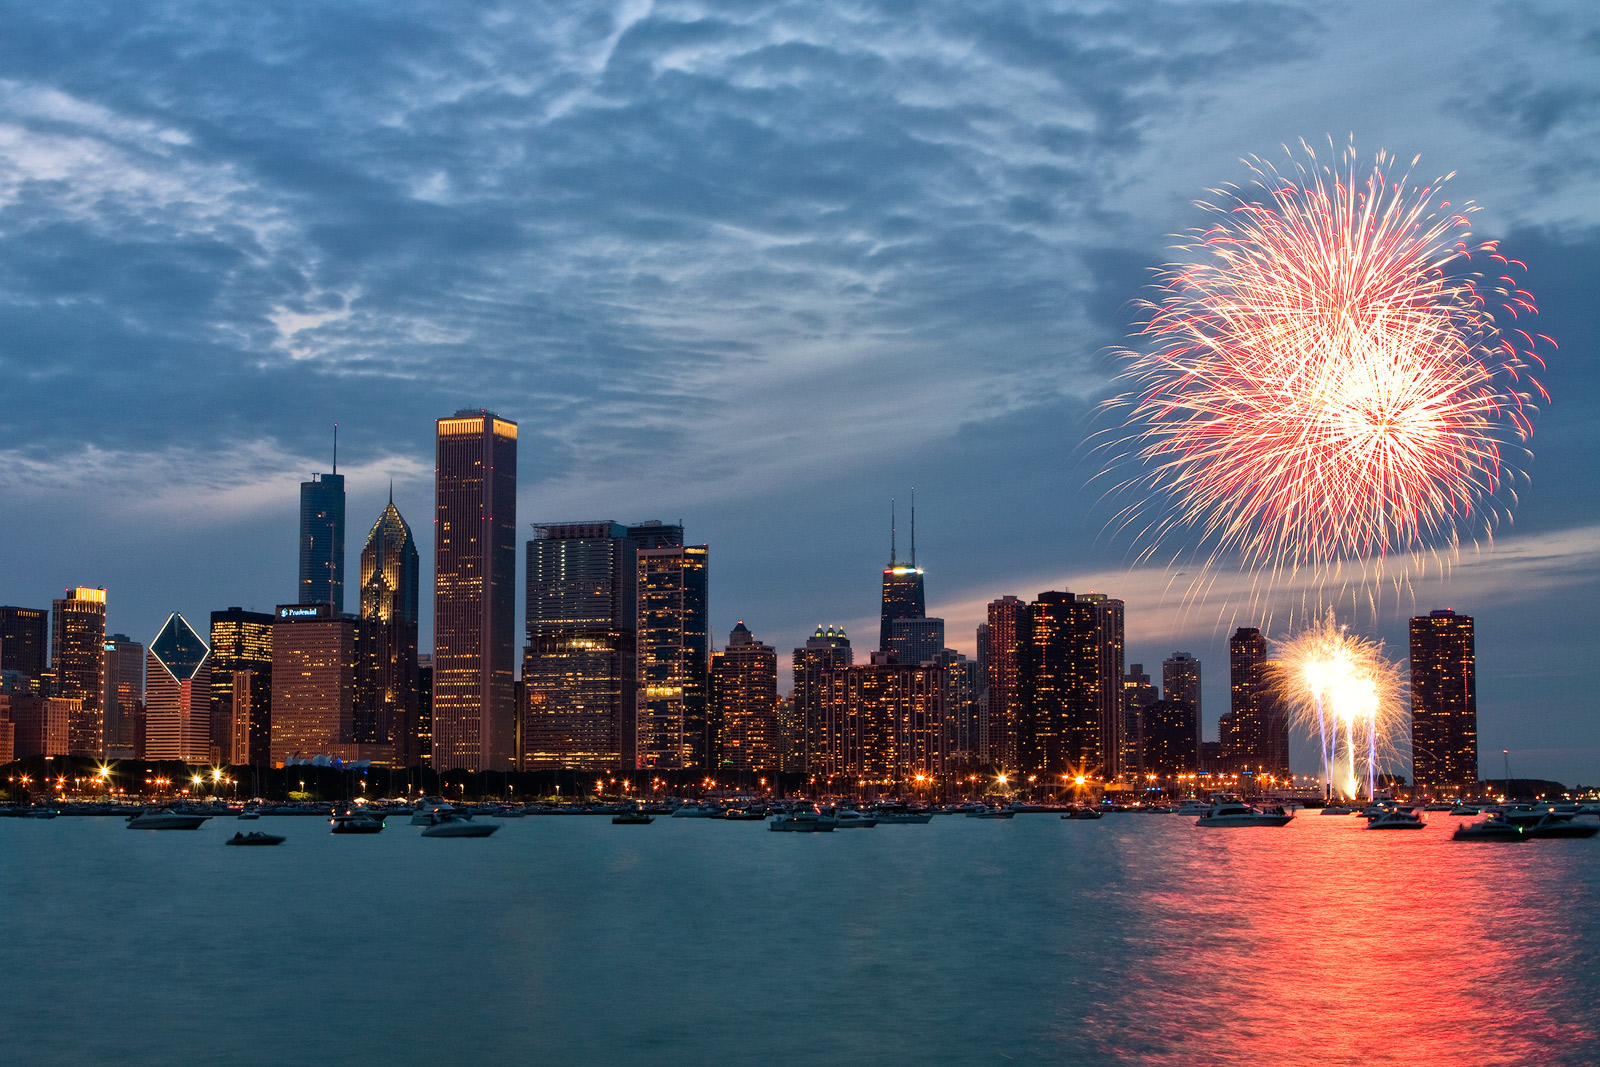 4th of july,america,chicago,city scape,cityscape,fireworks,fourth of july,horizontal,il,illinois,independence day,july 4th,july fourth,lake michigan,midwest,nor, photo